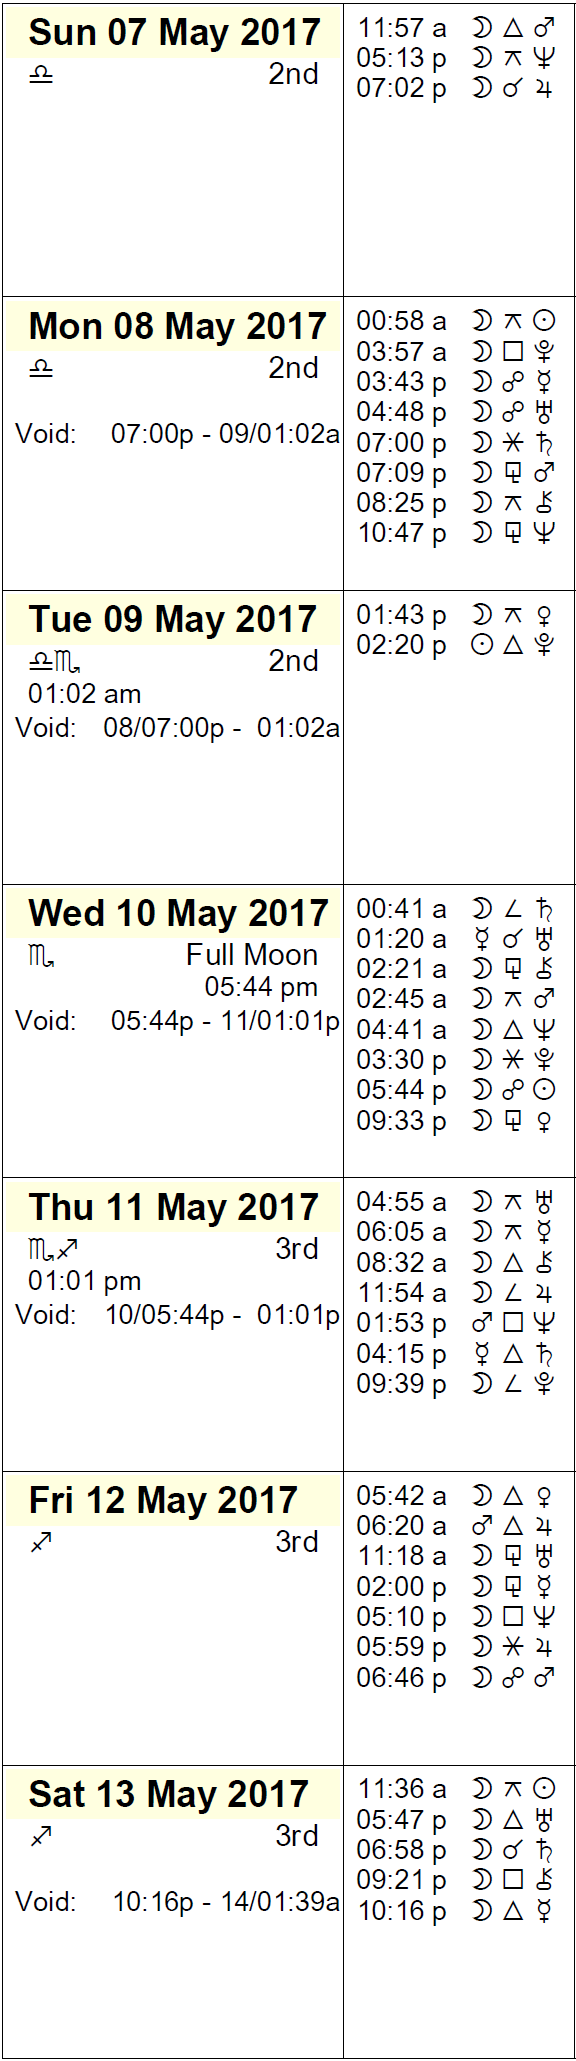 This Week in Astrology Calendar - May 7 to 13, 2017